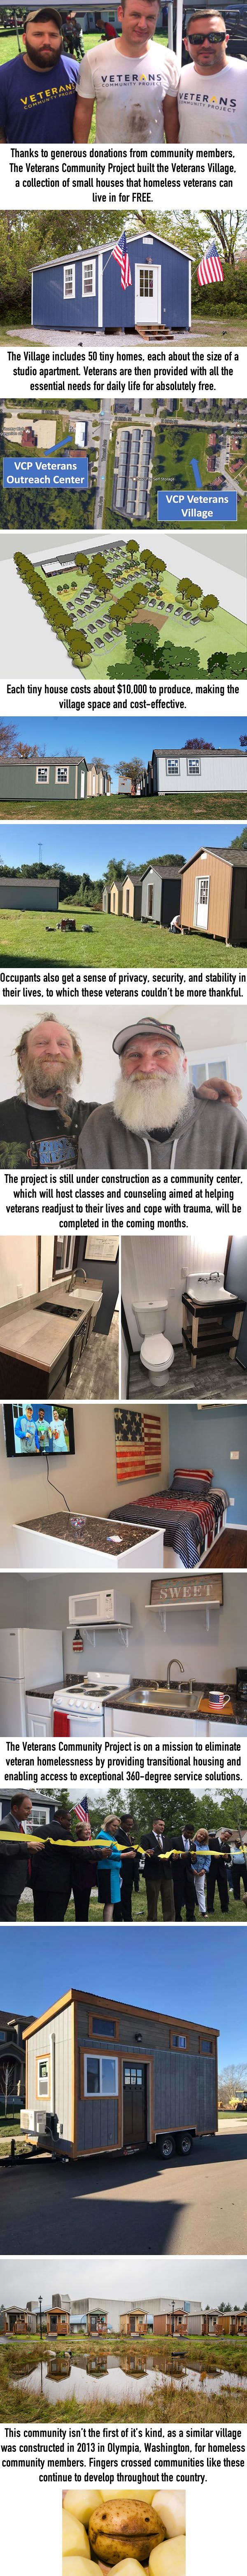 City Builds Tiny Village For Homeless Veterans With 50 Tiny Houses So They Could Live There For Free Tiny House Village Tiny House Nation Tiny House